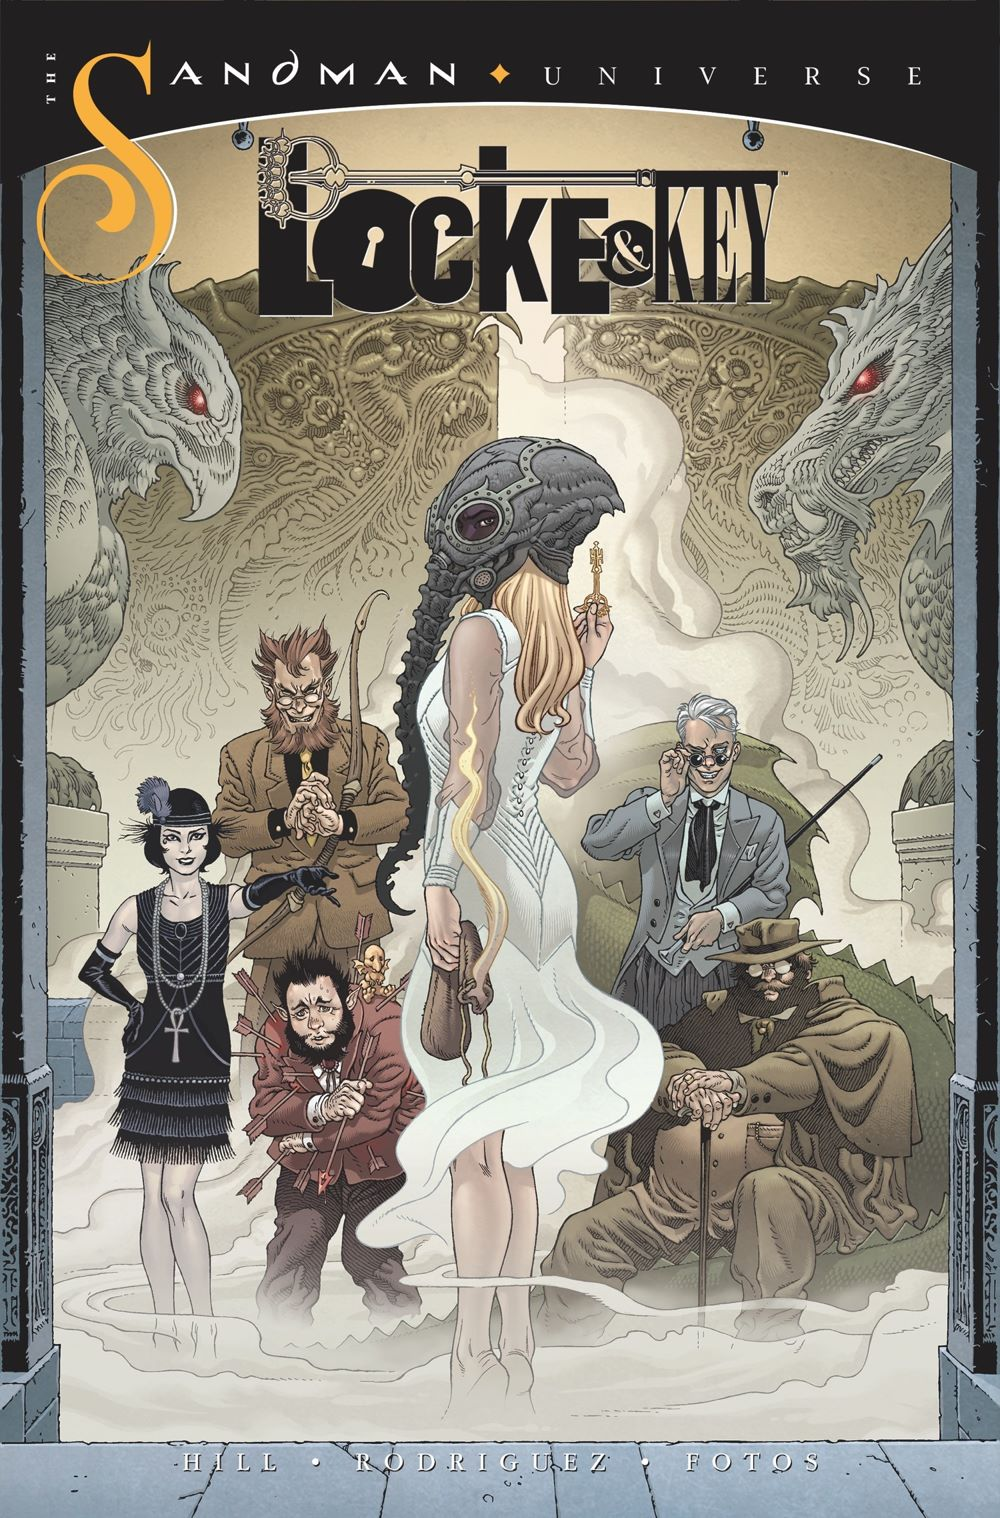 0a1e189b-fa0b-40ed-9b14-1328a3b5e9f4 First Look at IDW Publishing's LOCKE AND KEY THE SANDMAN UNIVERSE HELL AND GONE #1